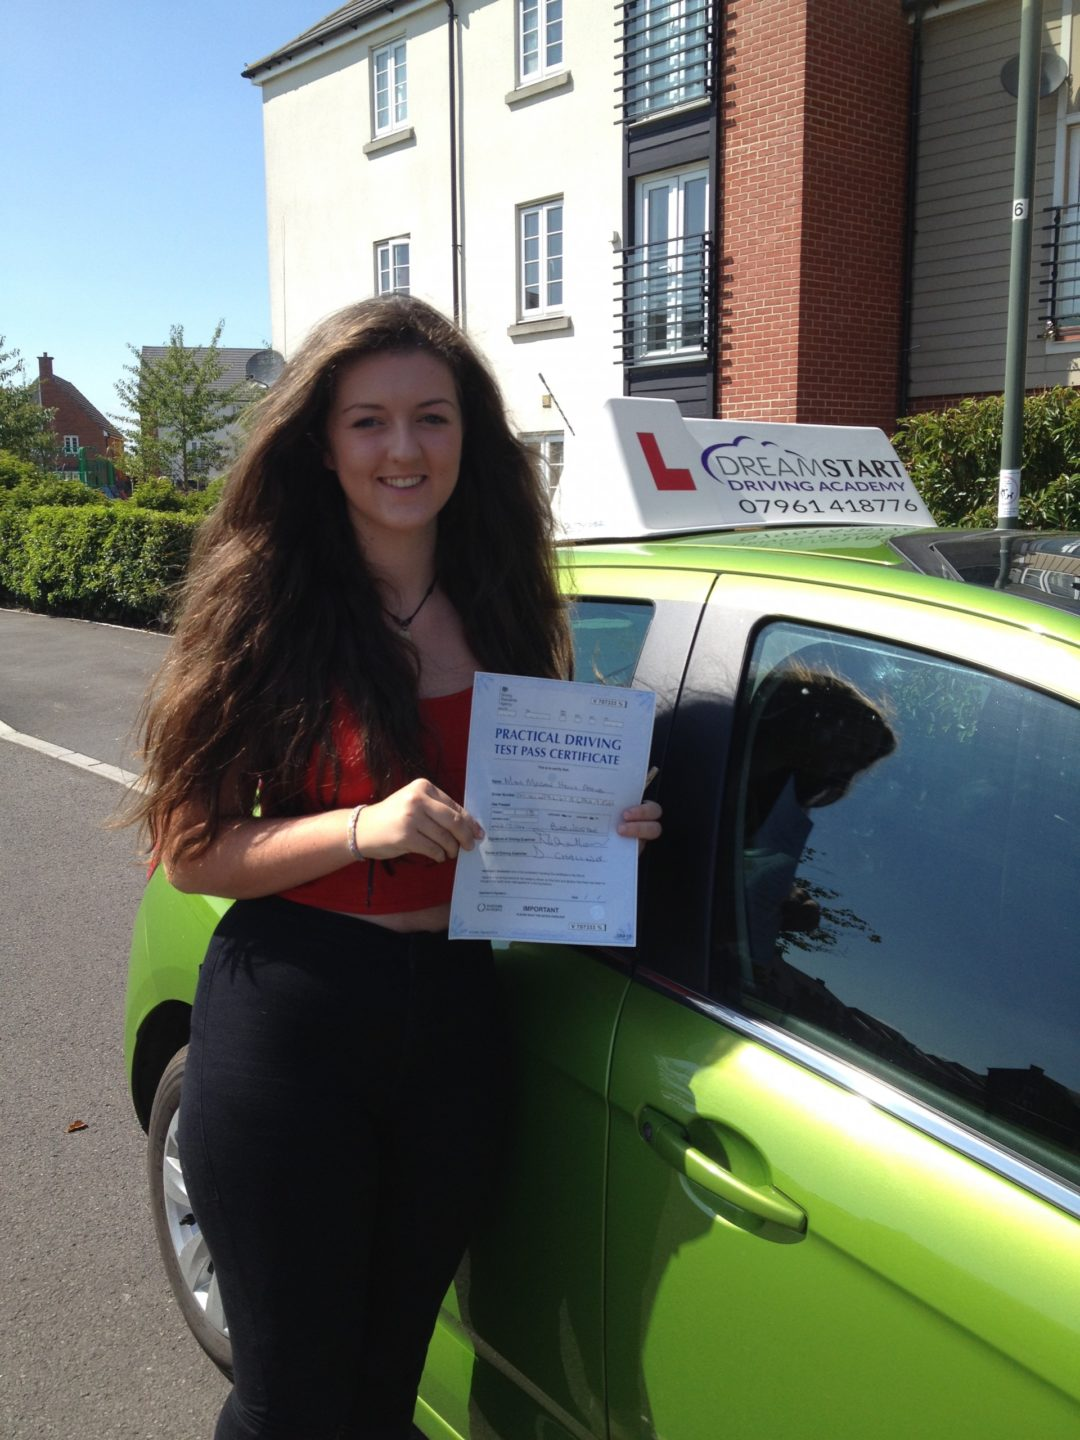 Megan A – Passed first time on 22nd July 2014